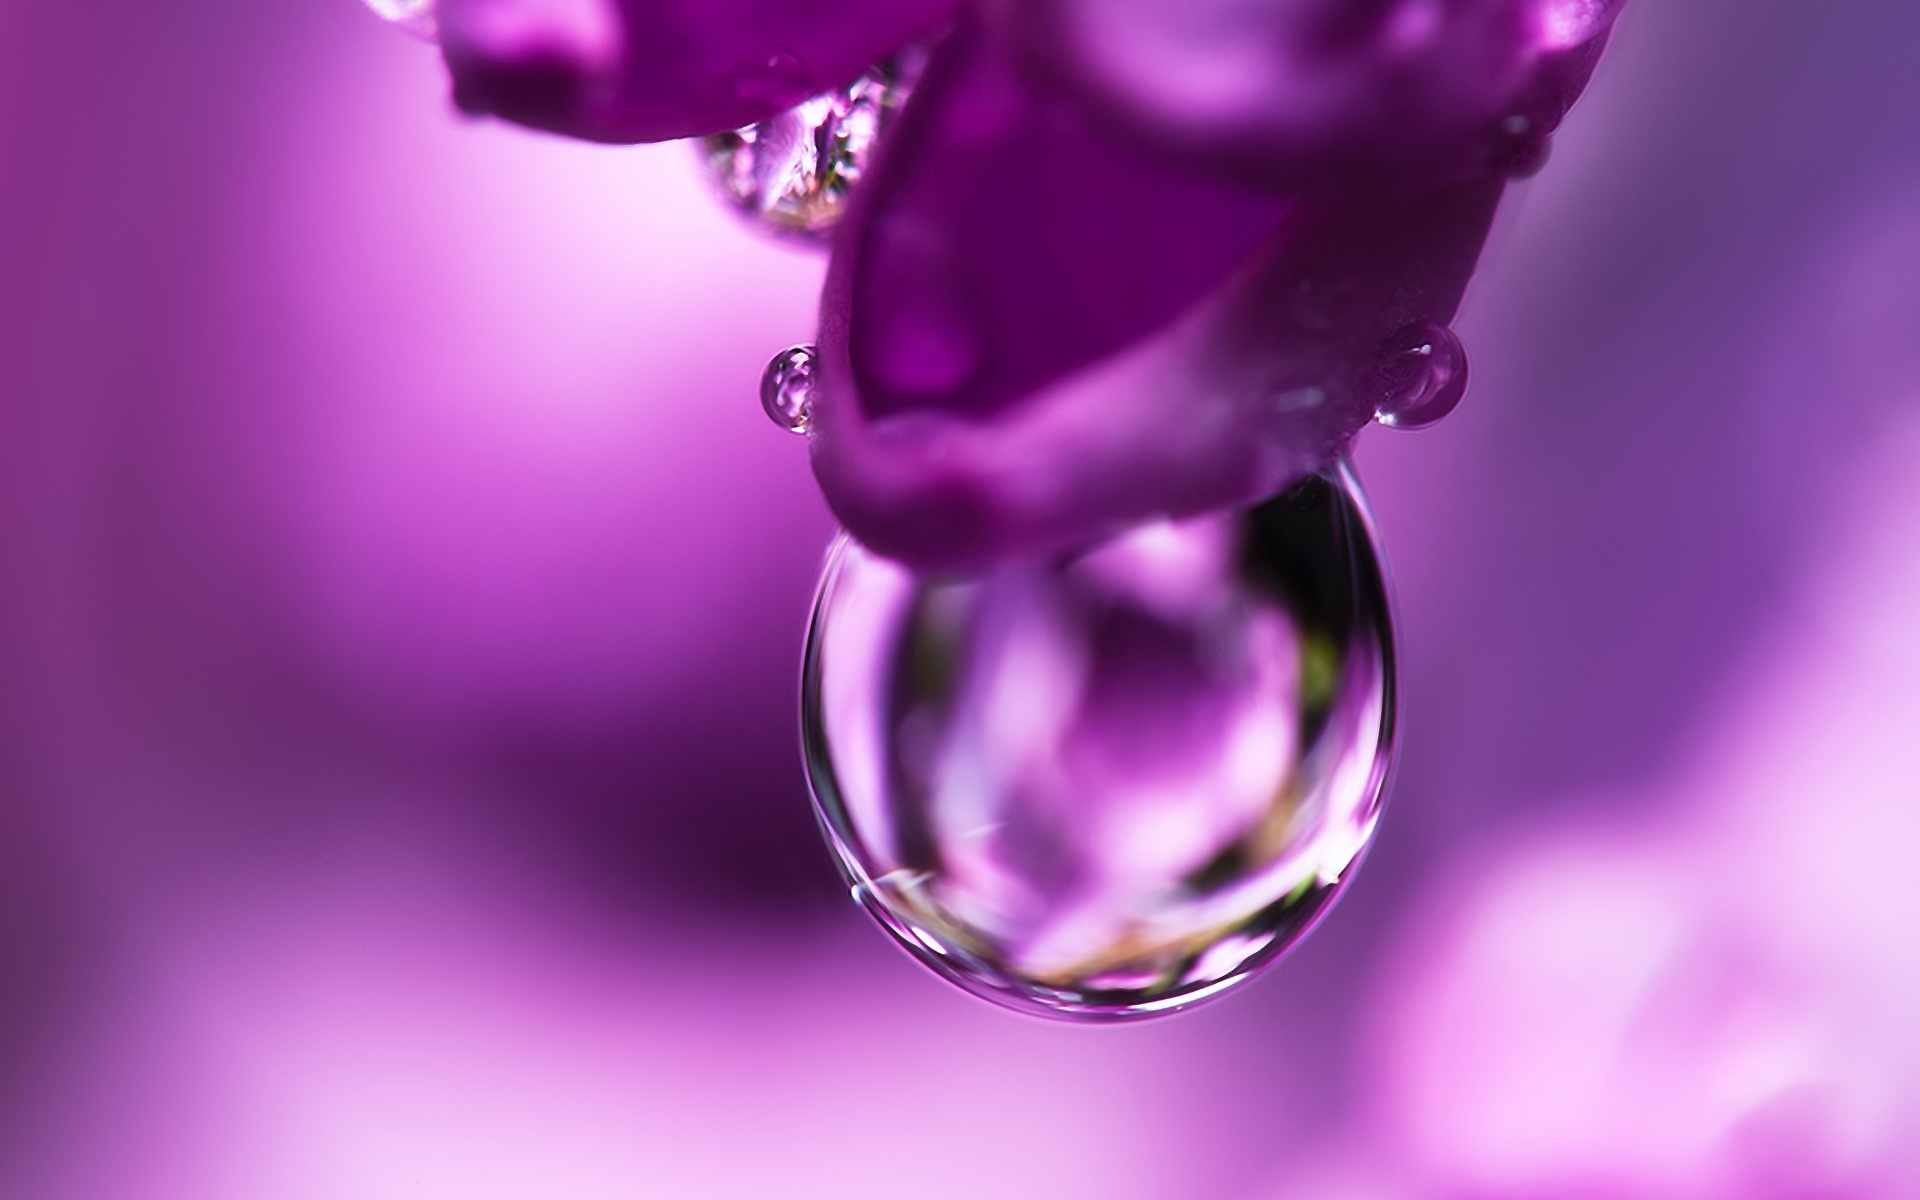 41694 download wallpaper Objects, Drops, Violet screensavers and pictures for free